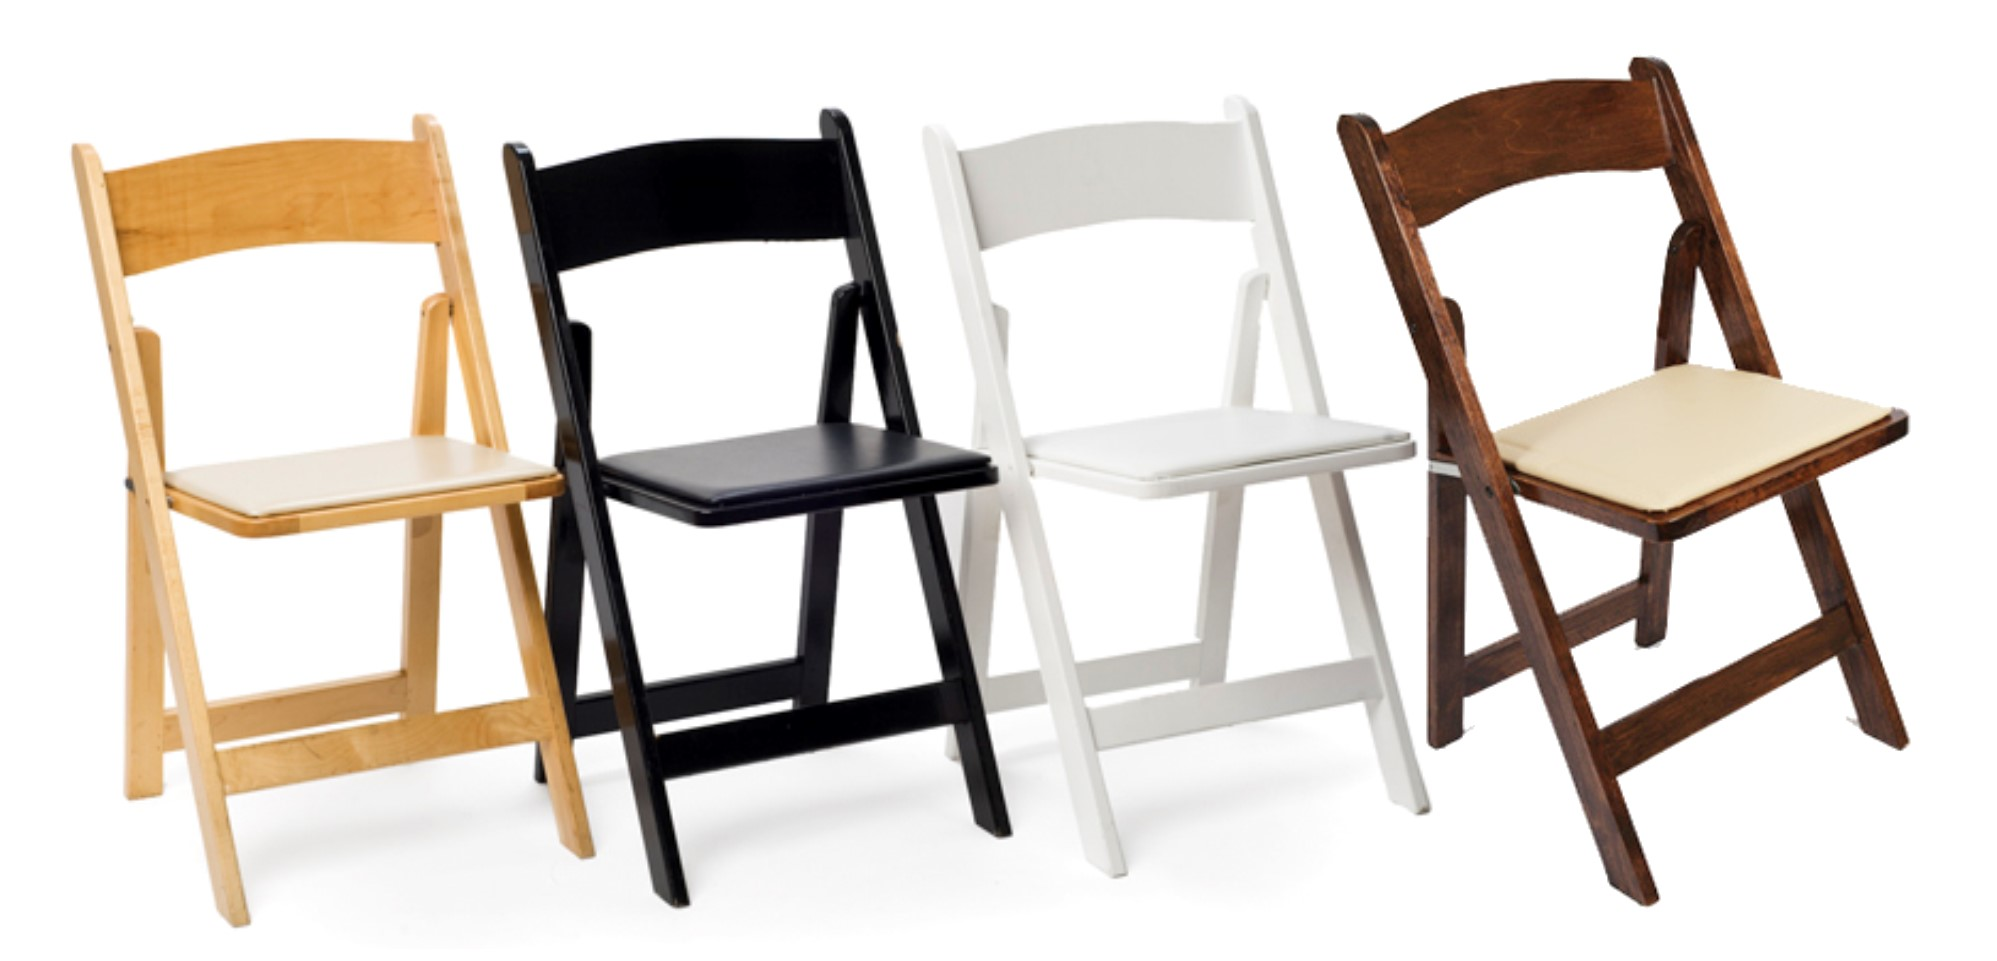 Chairs – Padded Folding Chairs